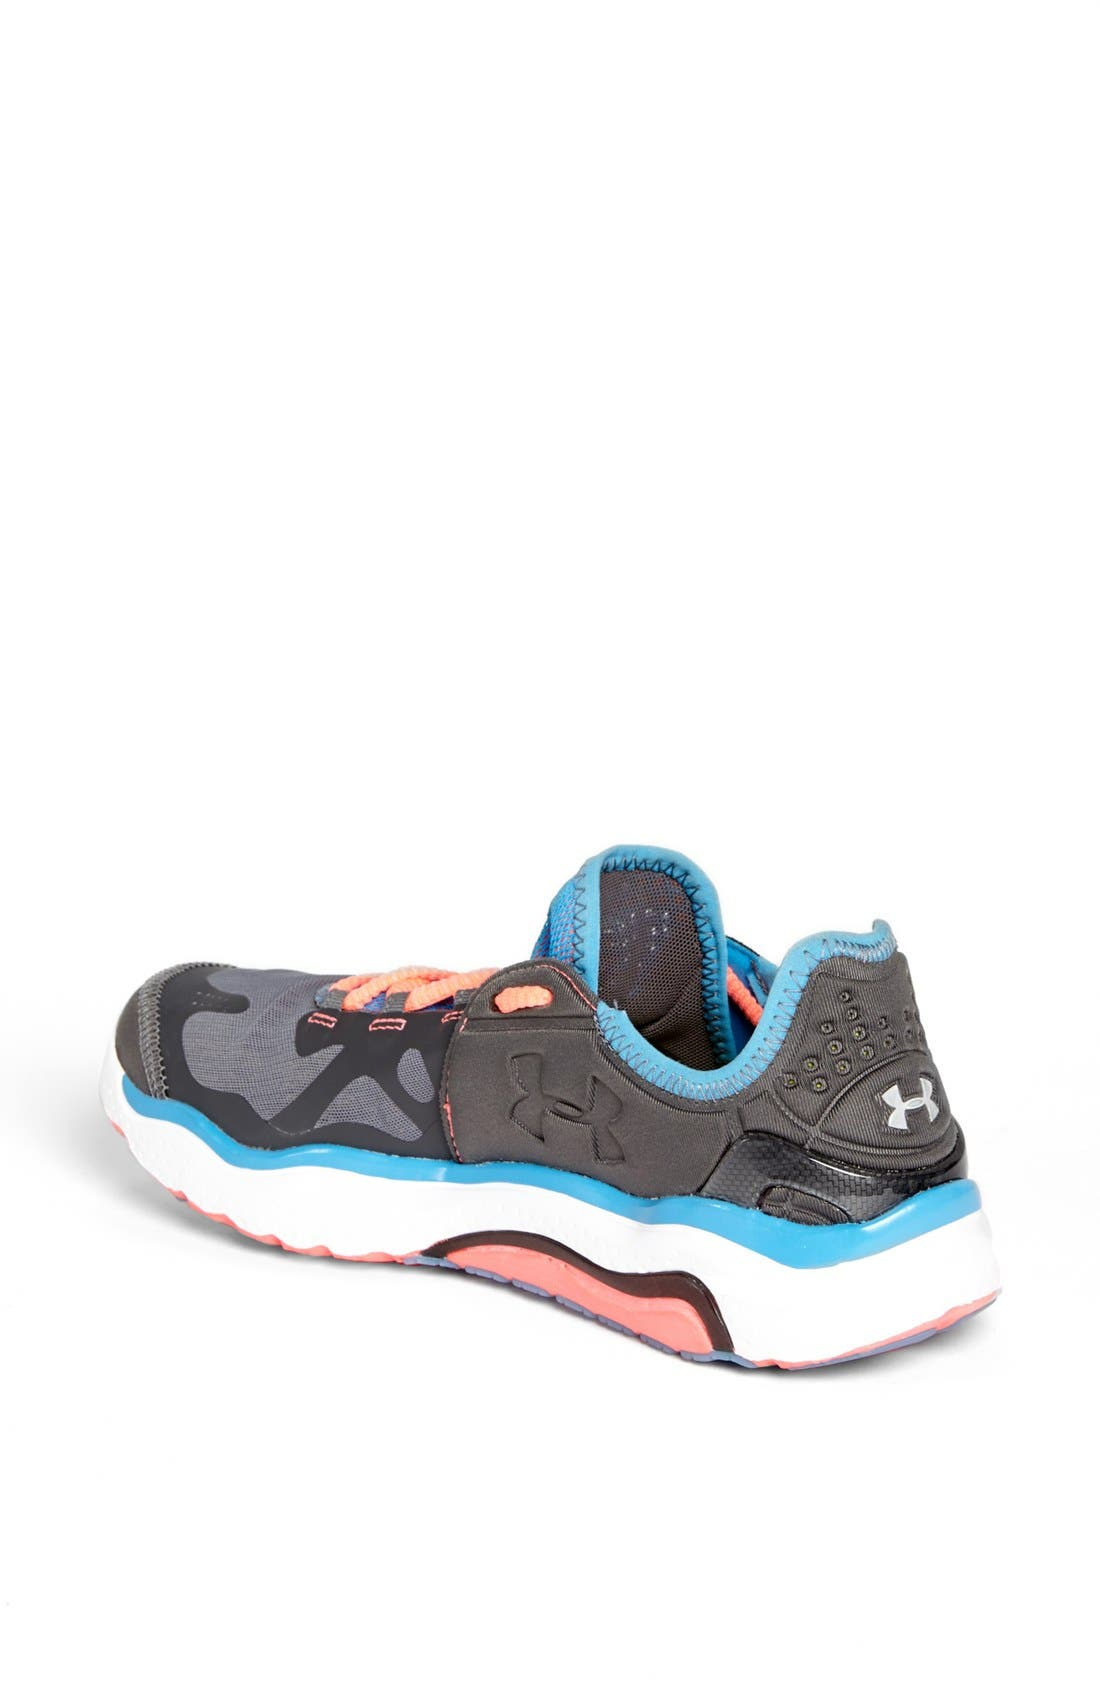 Alternate Image 2  - Under Armour 'Charge RC 2' Running Shoe (Women)